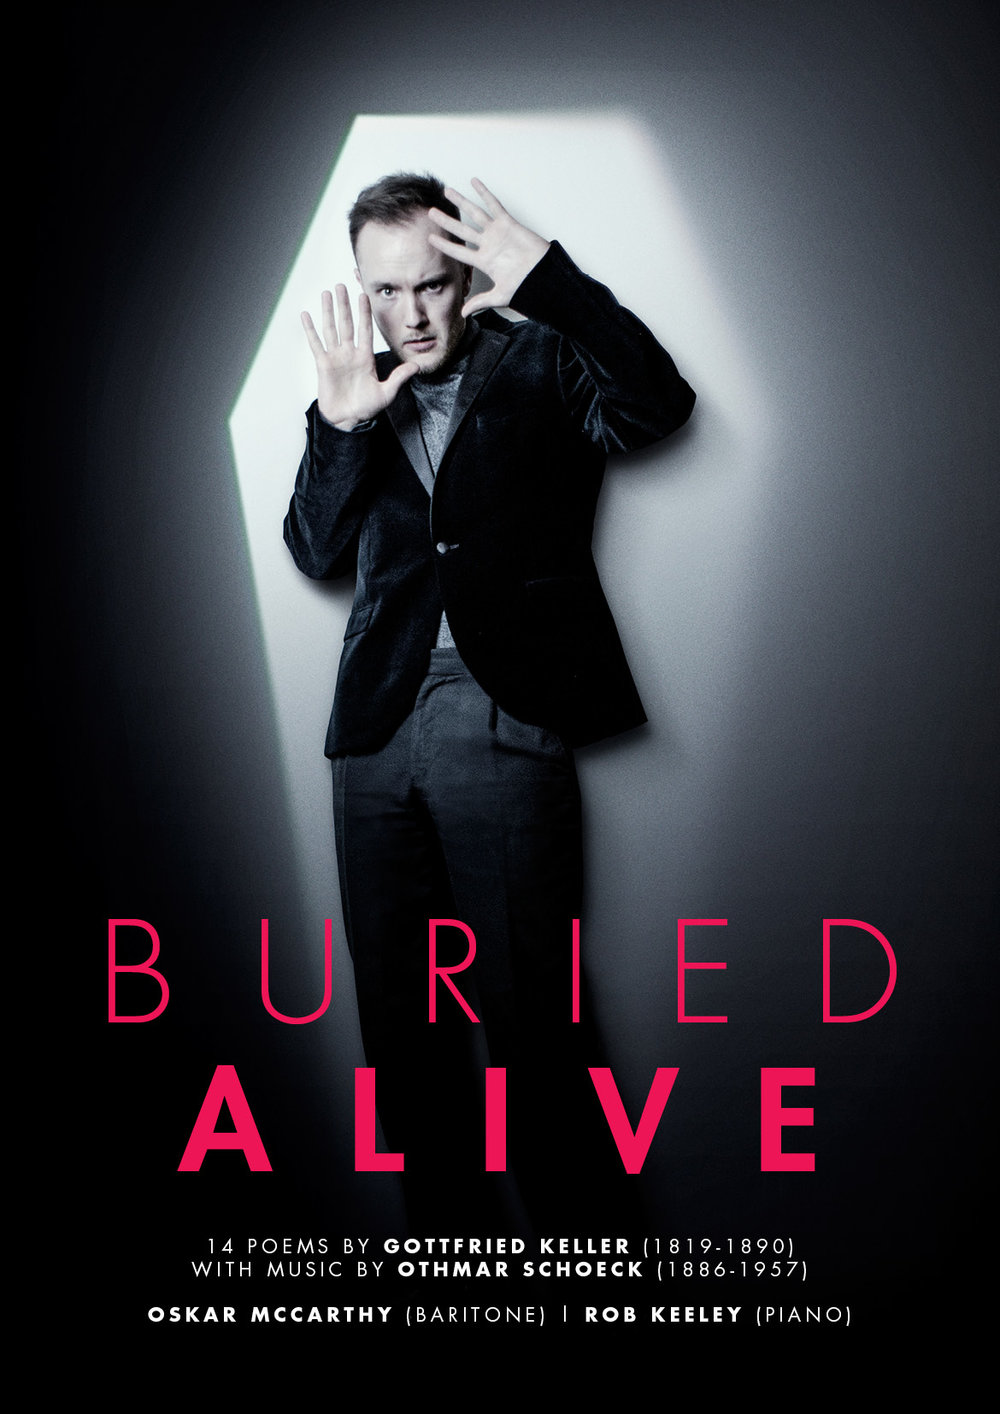 Buried Alive Squarespace cover.jpg